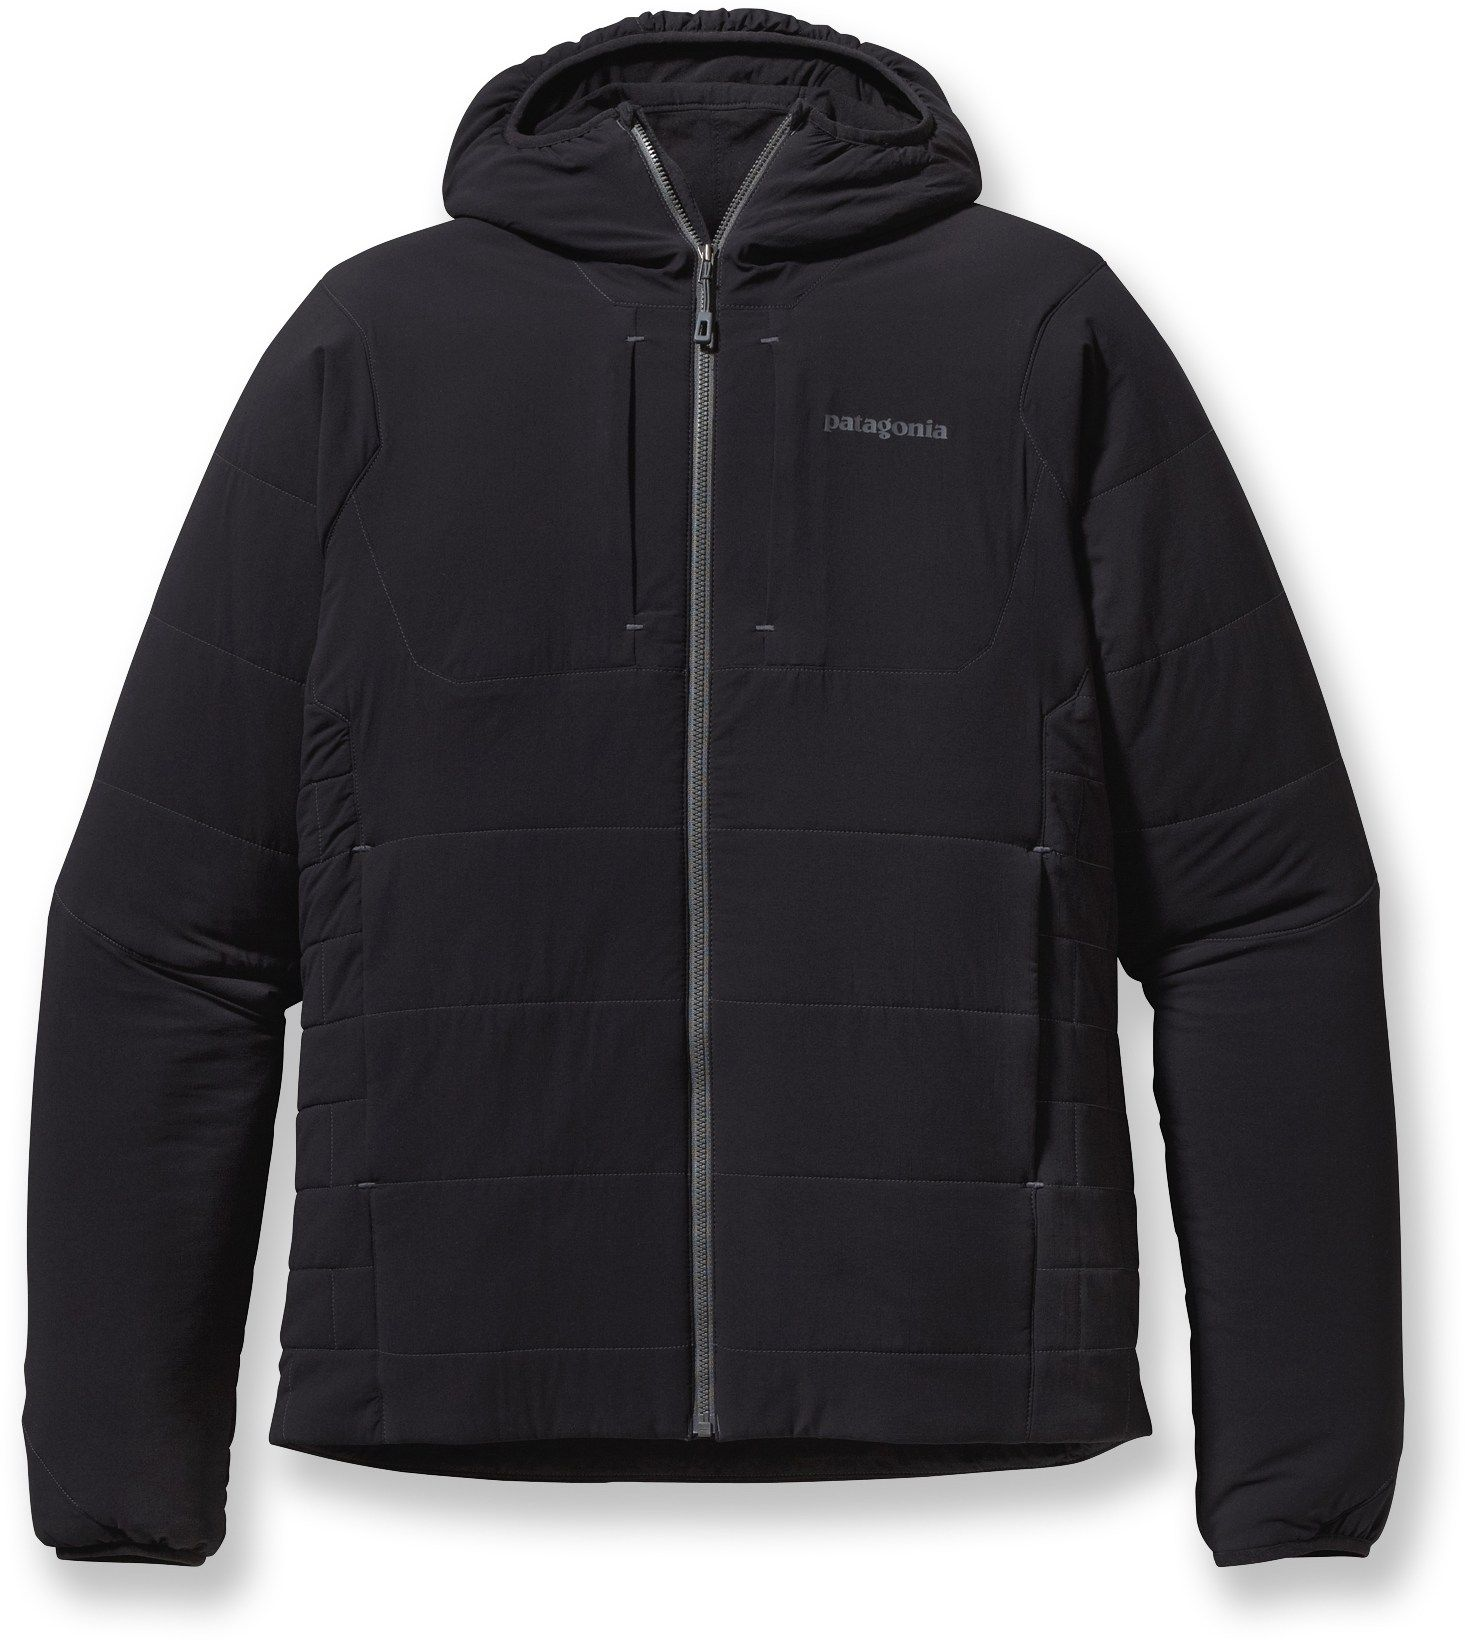 Patagonia NanoAir Hoodie Men's Hoodies, Hooded jacket